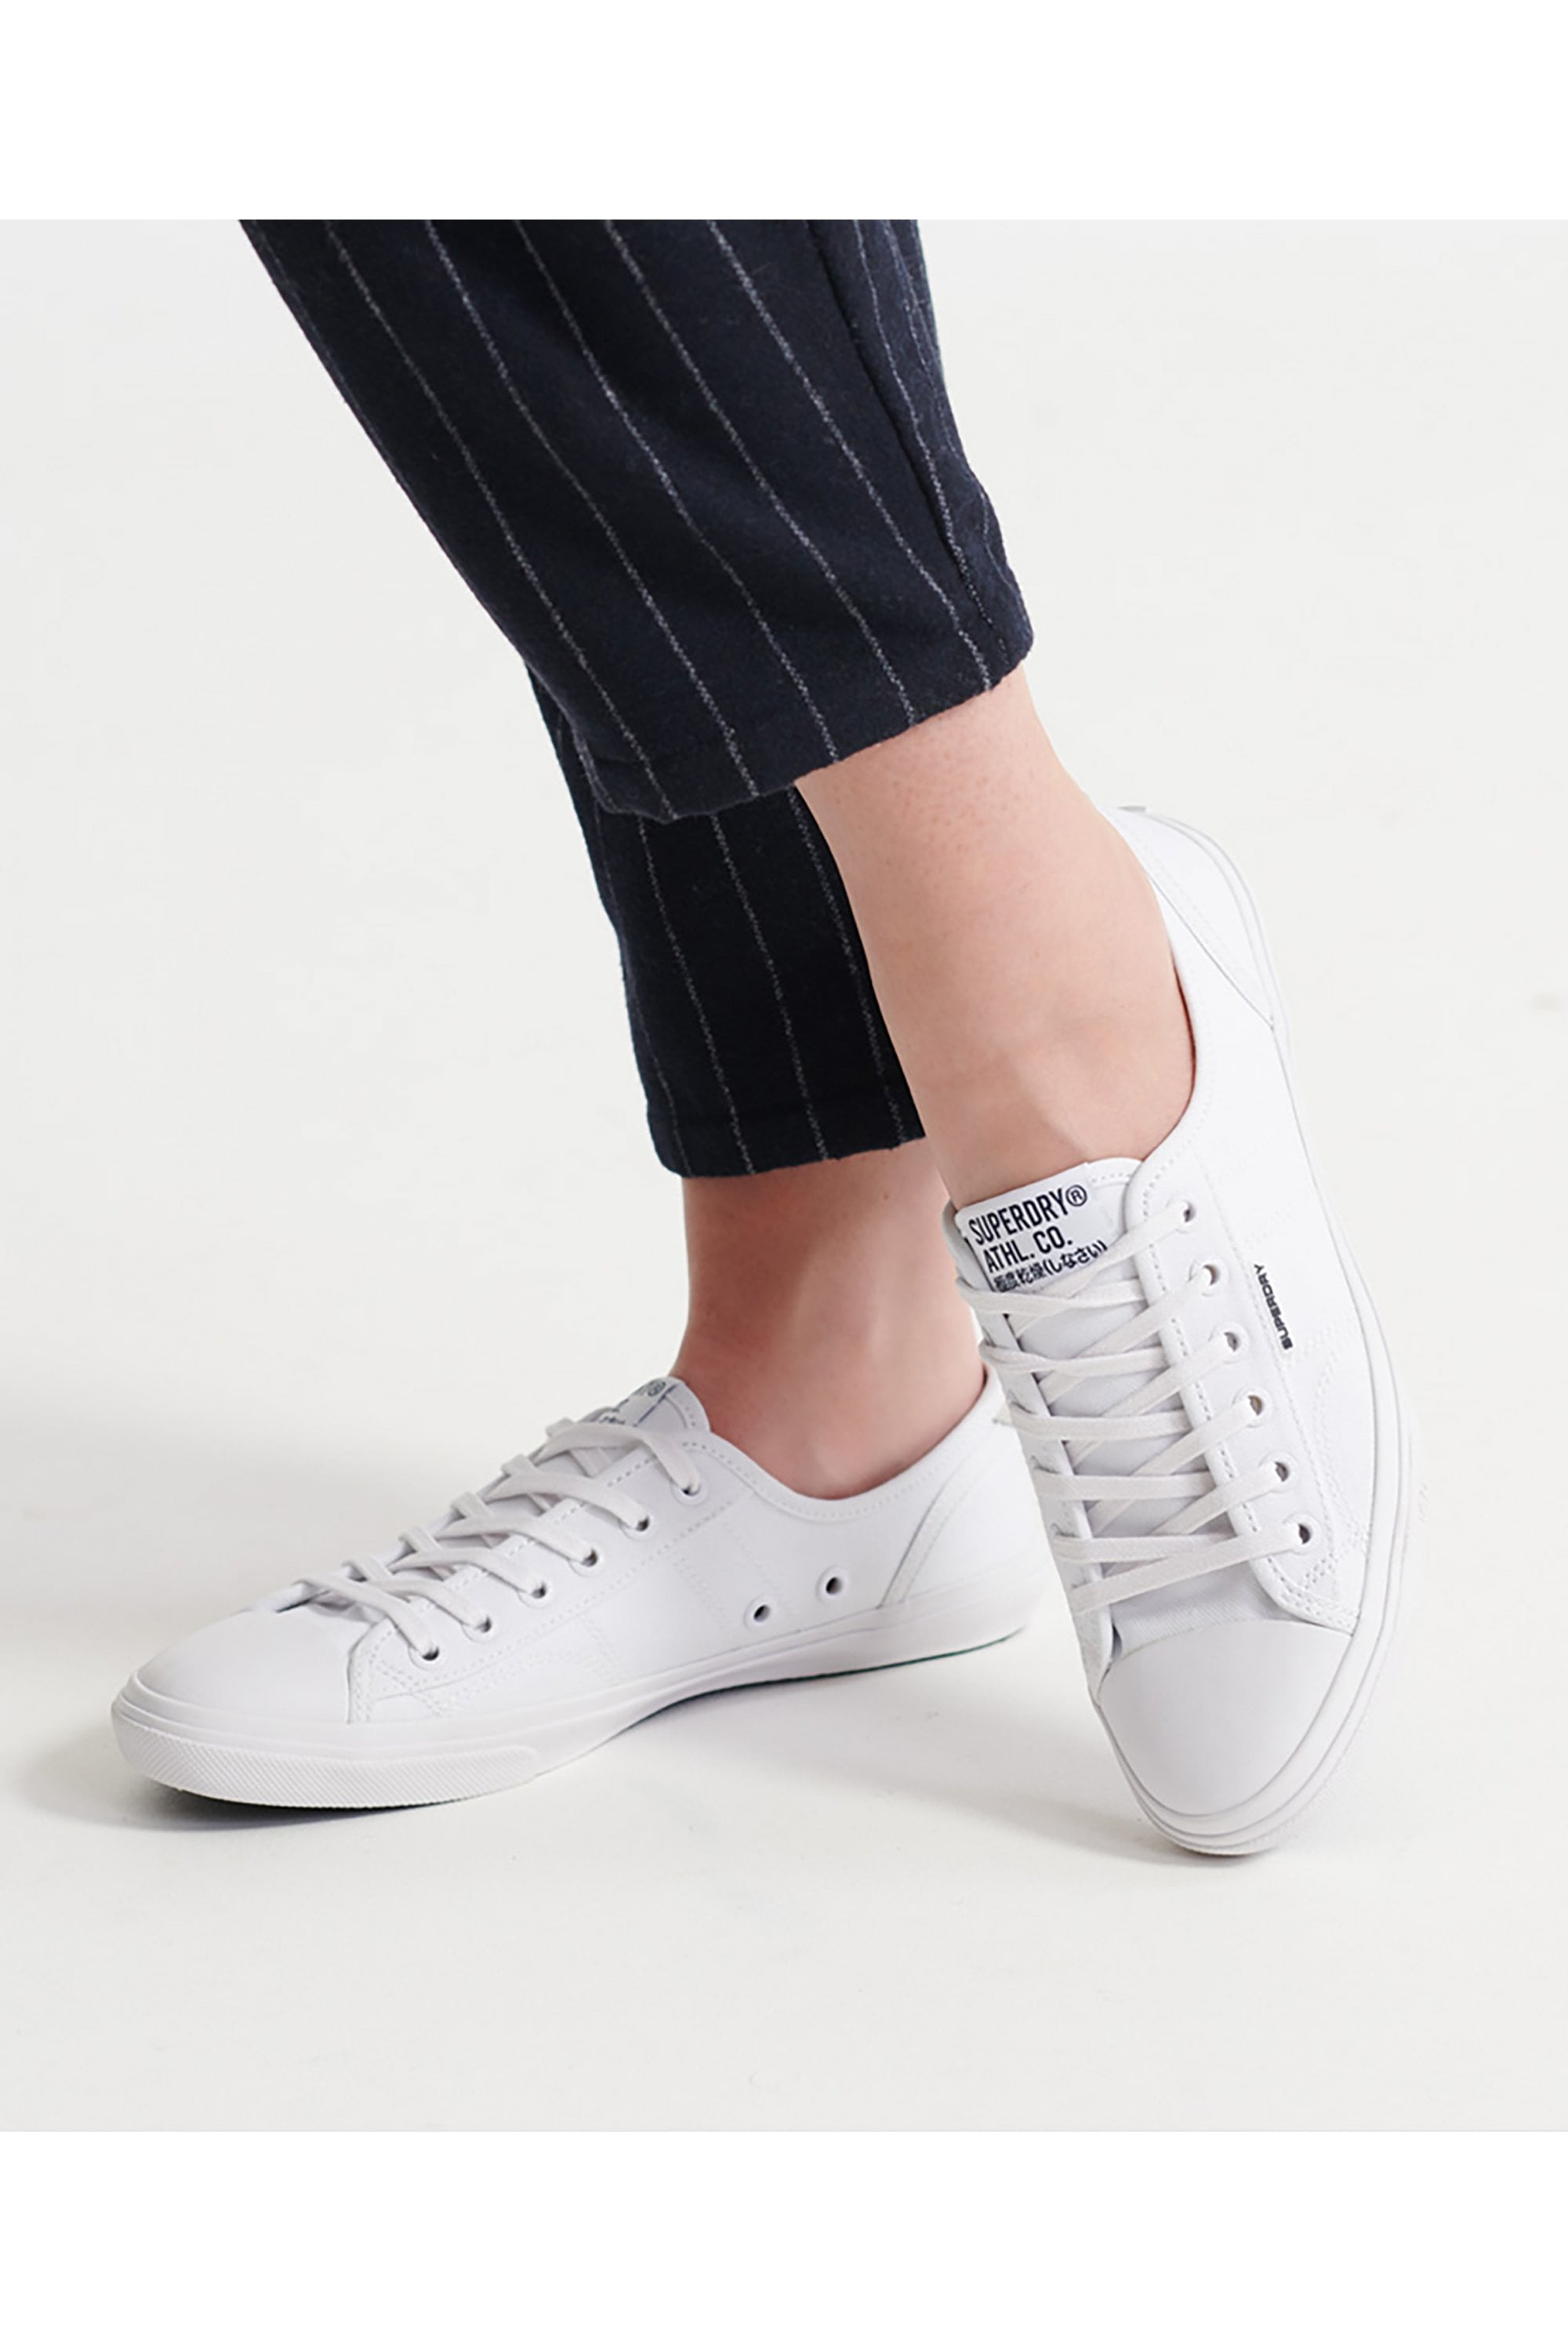 Superdry Low Pro Sneaker Optic White